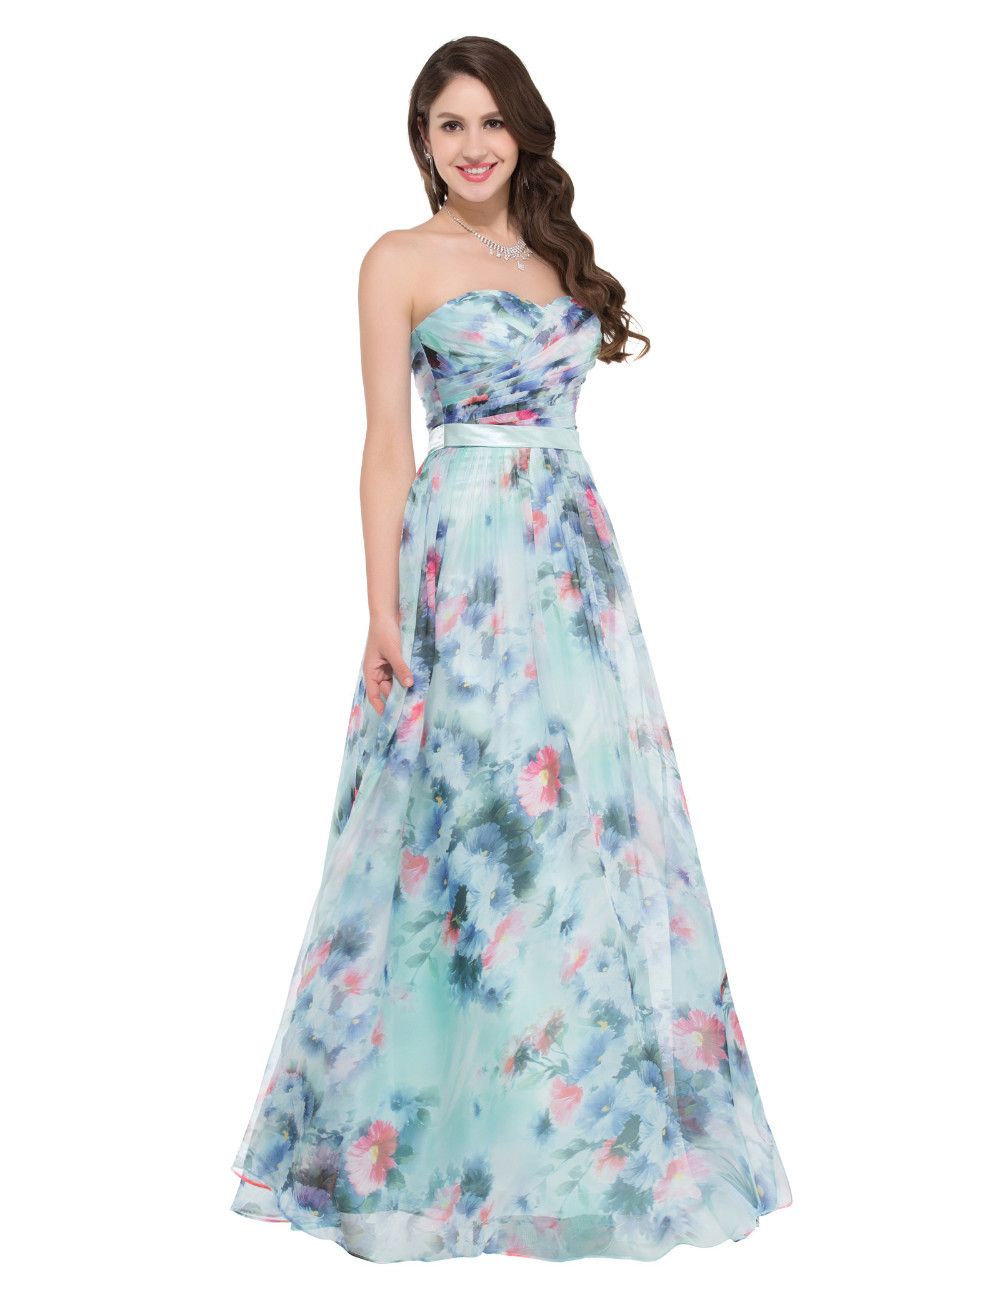 HTB1v92nNpXXXXbOaXXXq6xXFXXXzFloral Print Formal Occasion Floor length Evening Dress